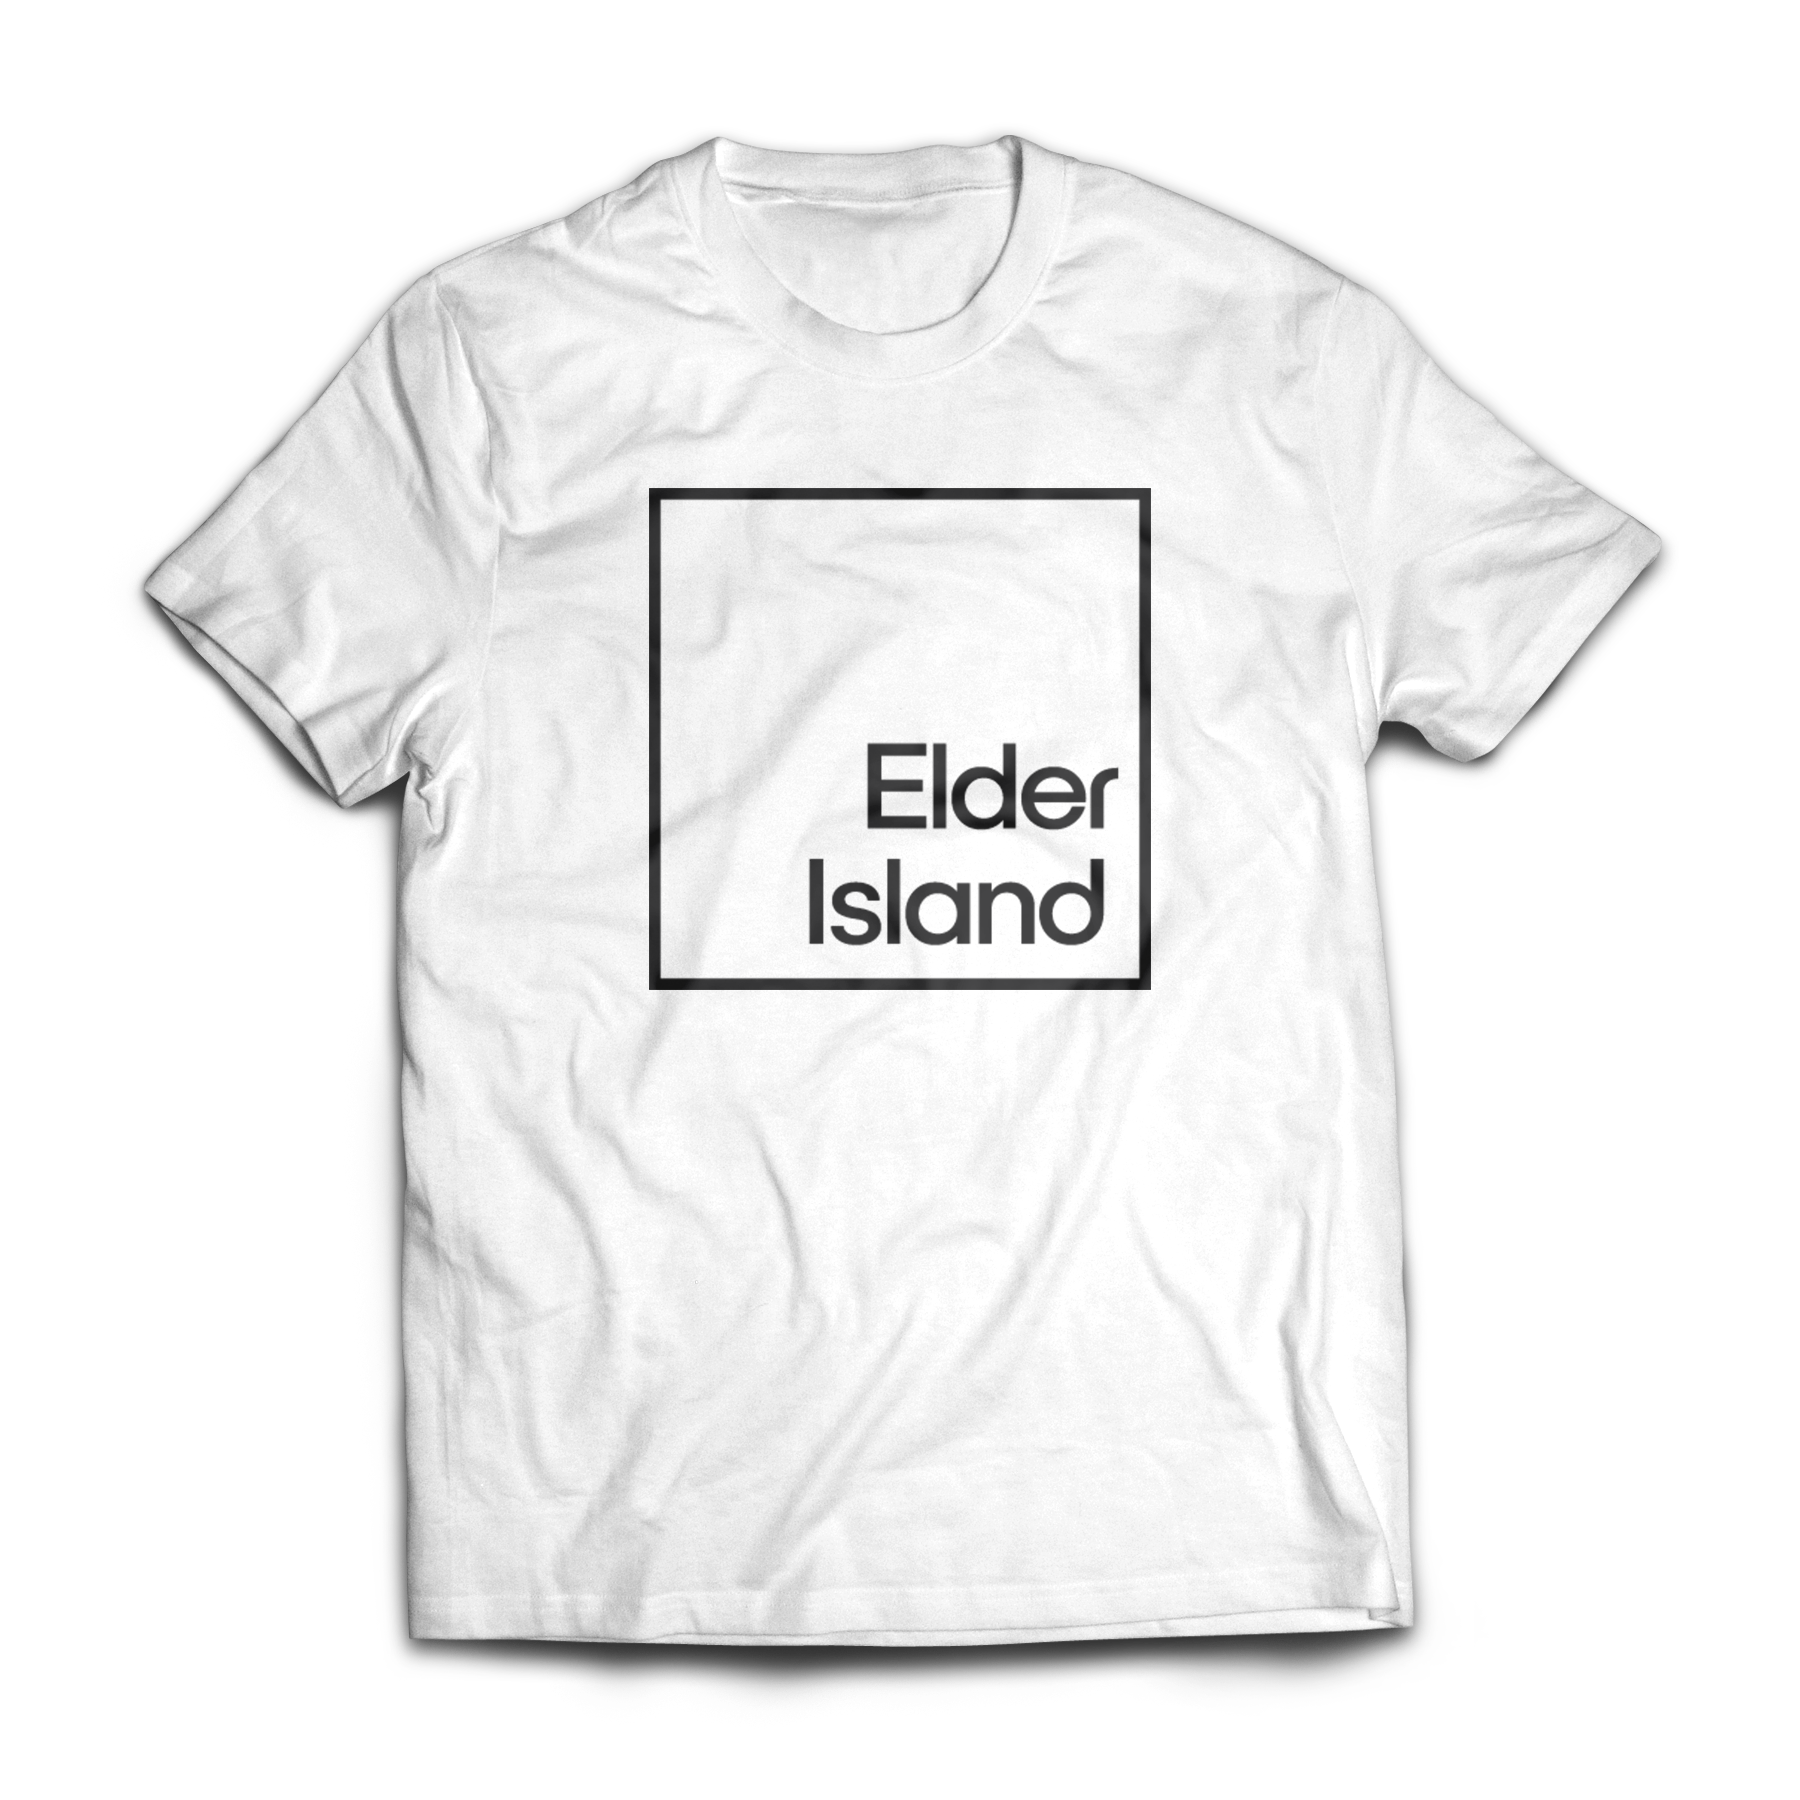 https://www.musicglue.com/elderisland/products/logo-t-shirt-white